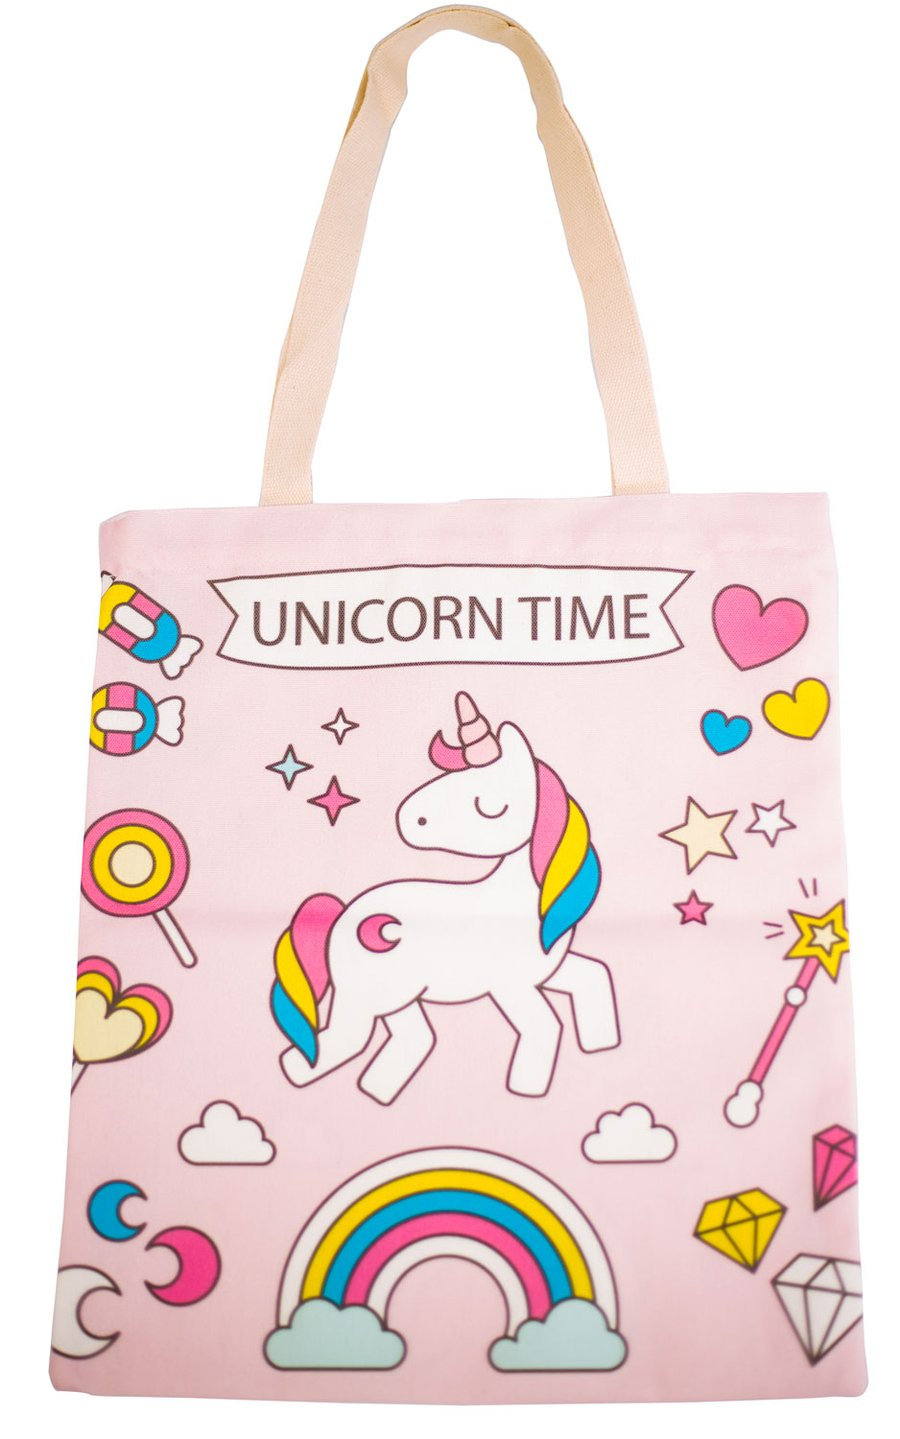 Unicorn Time Tote Bag With Zipper